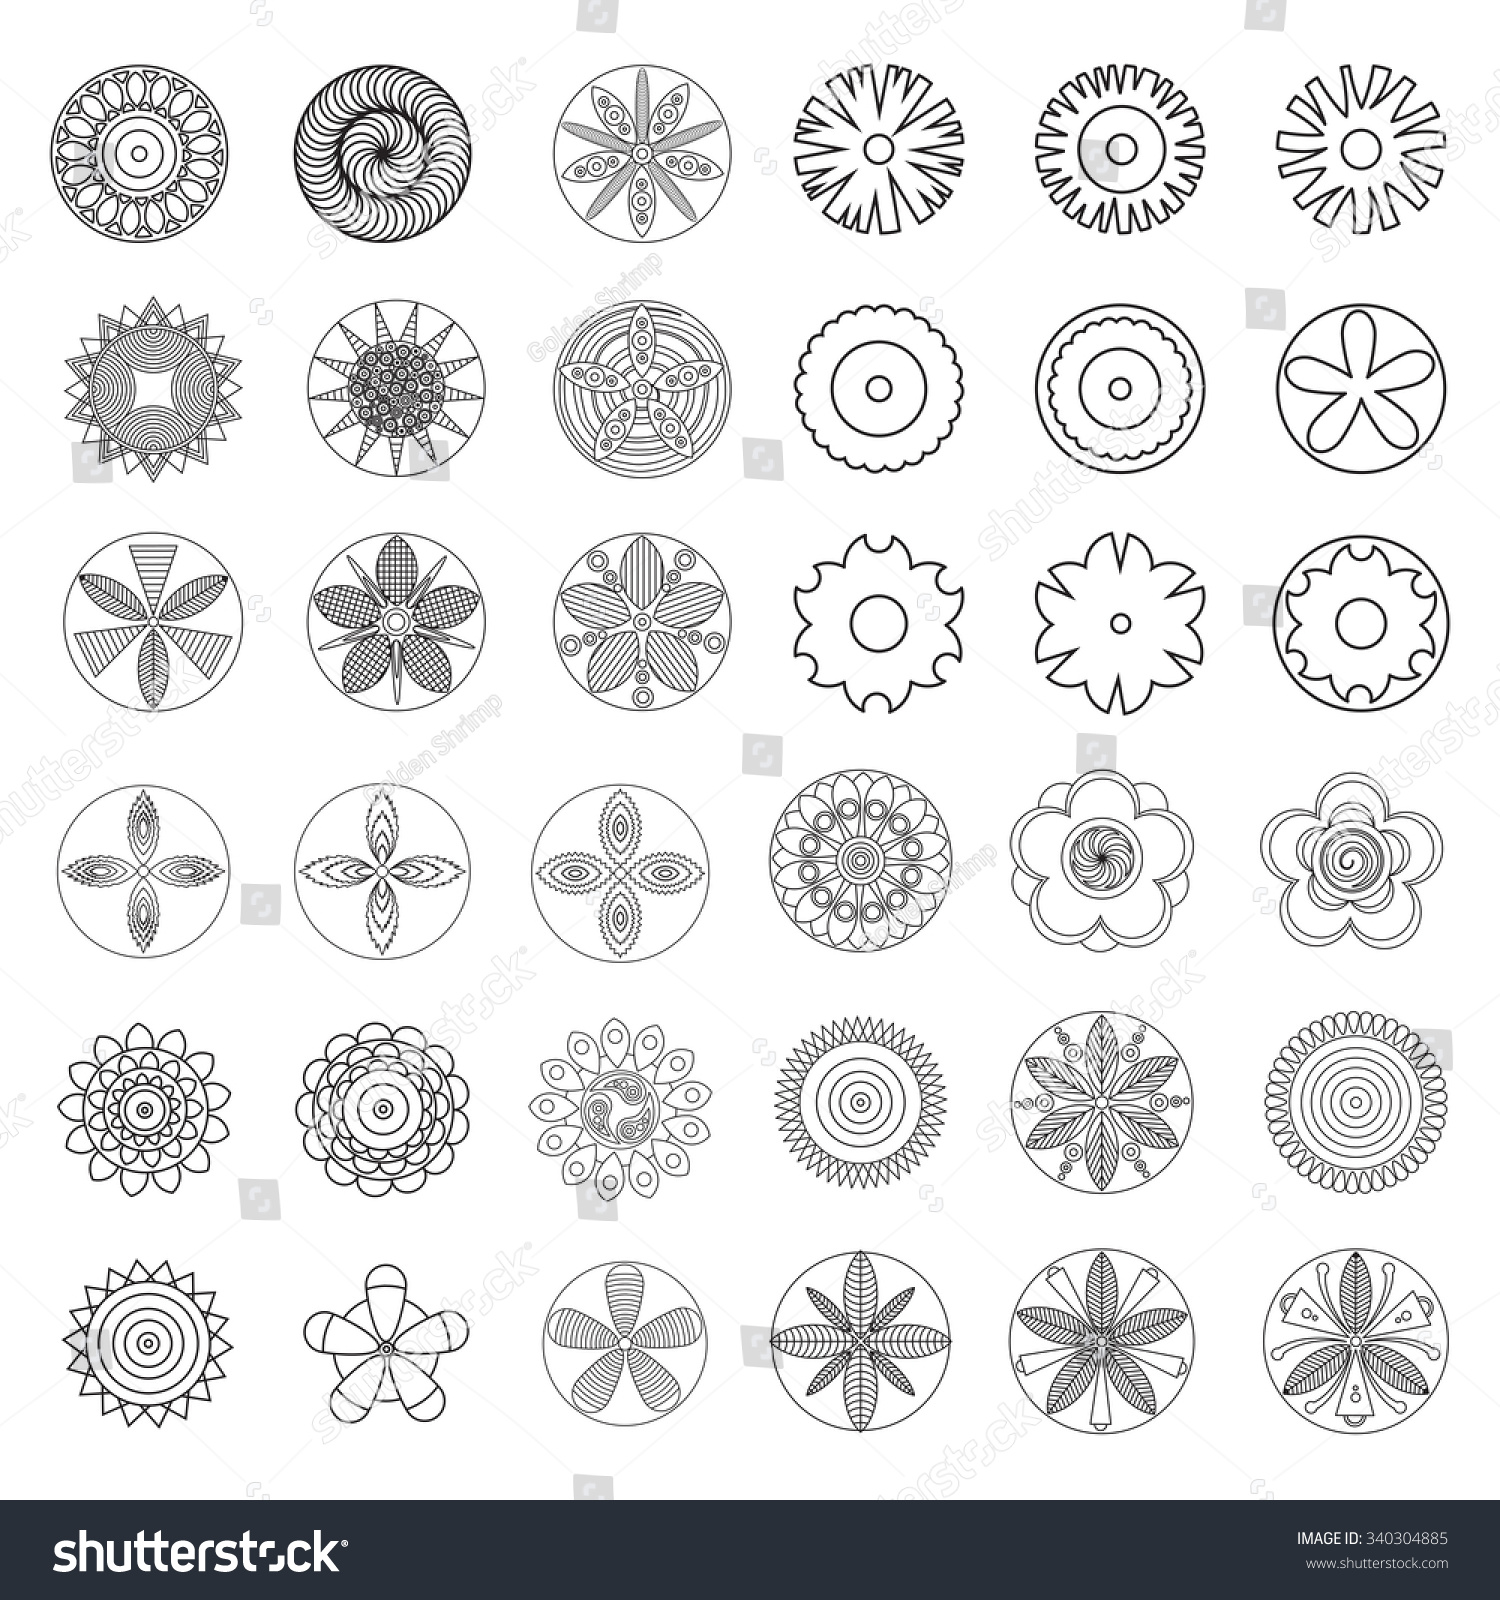 Flowers Design Element Coloring Page Book Stock Vector (Royalty Free ...